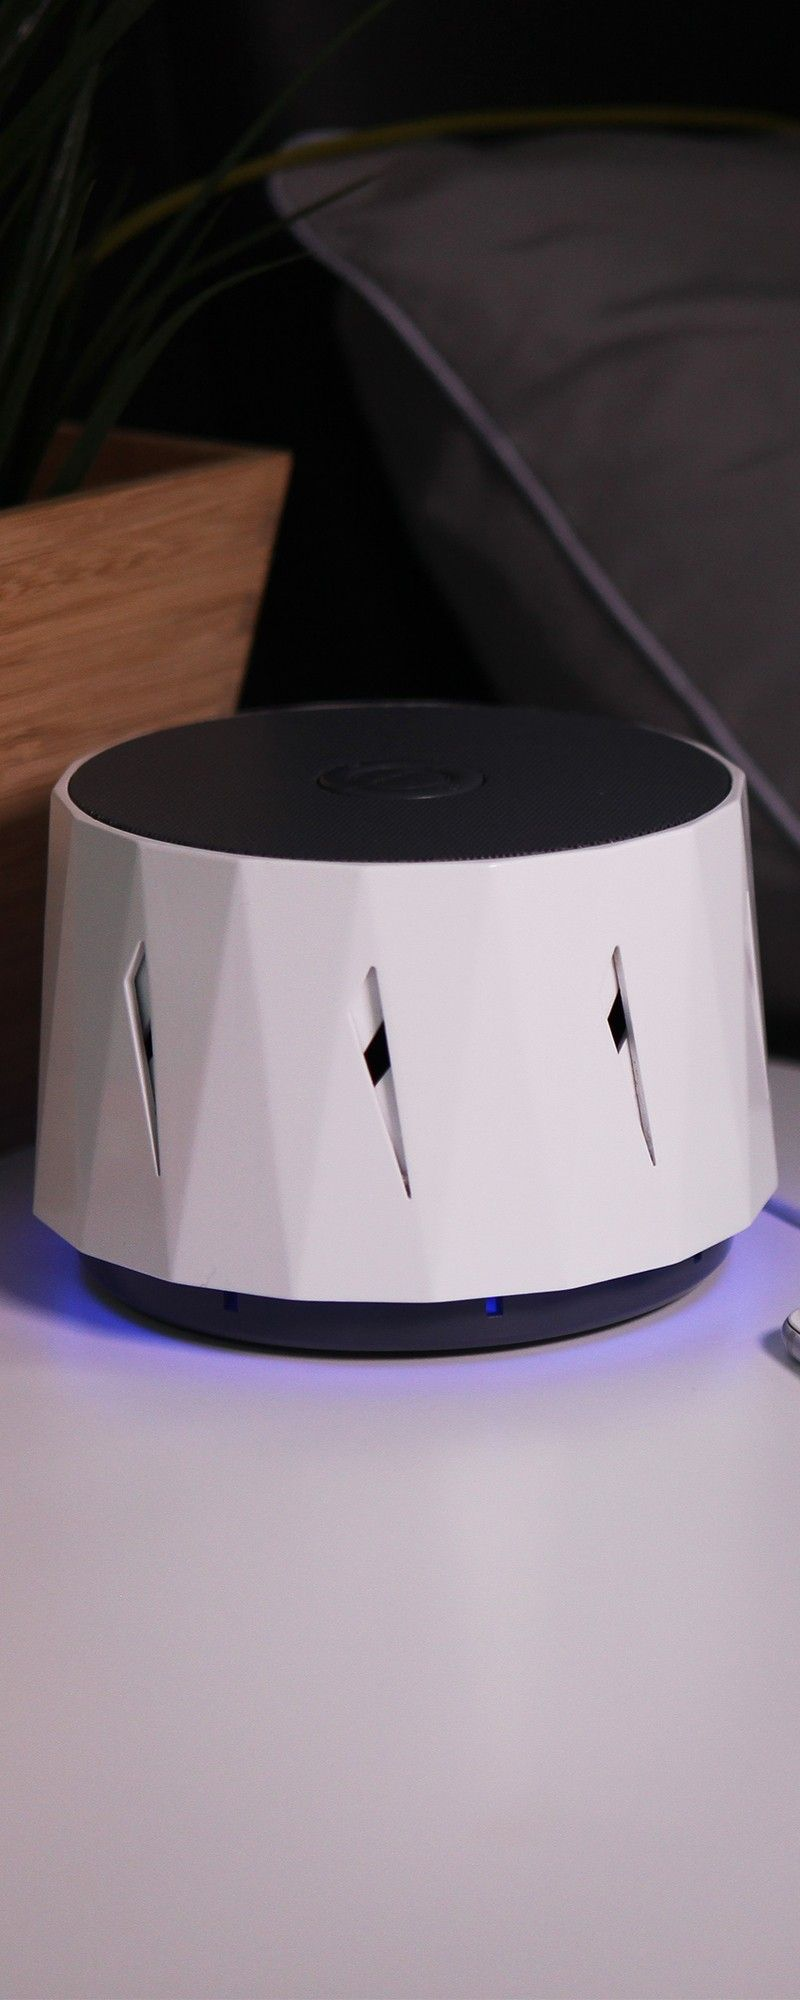 Sleep soundly with this modern sound machine. Unlike ...